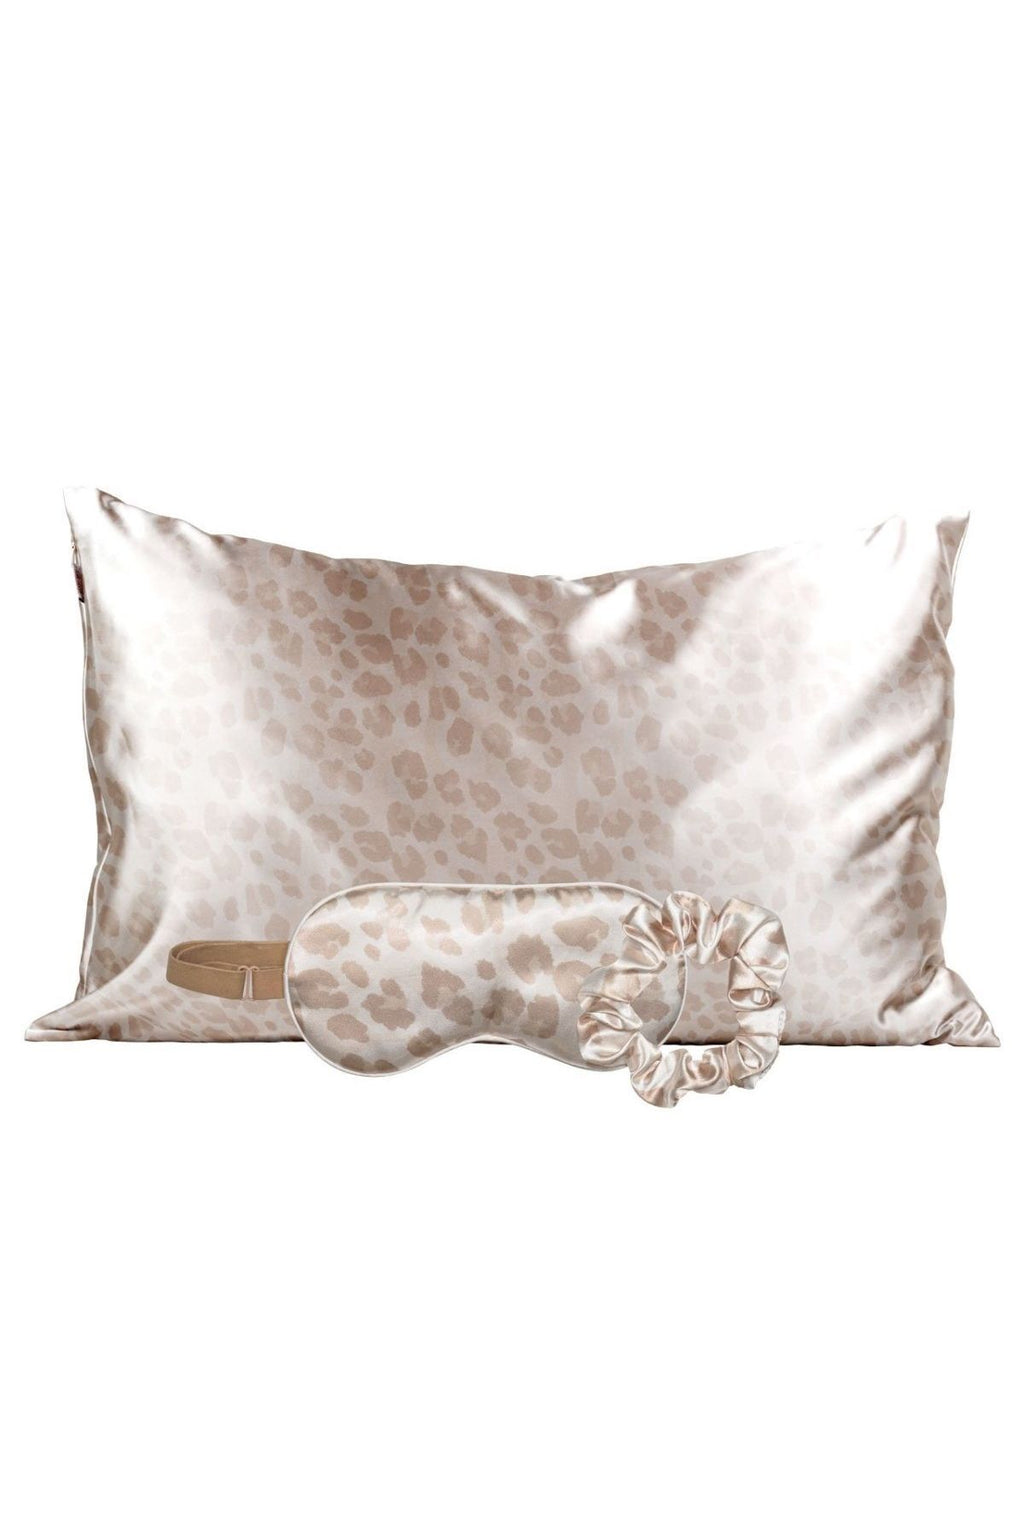 FOUNTAIN OF YOUTH SATIN LEOPARD SLEEP SET - [jayden_p]